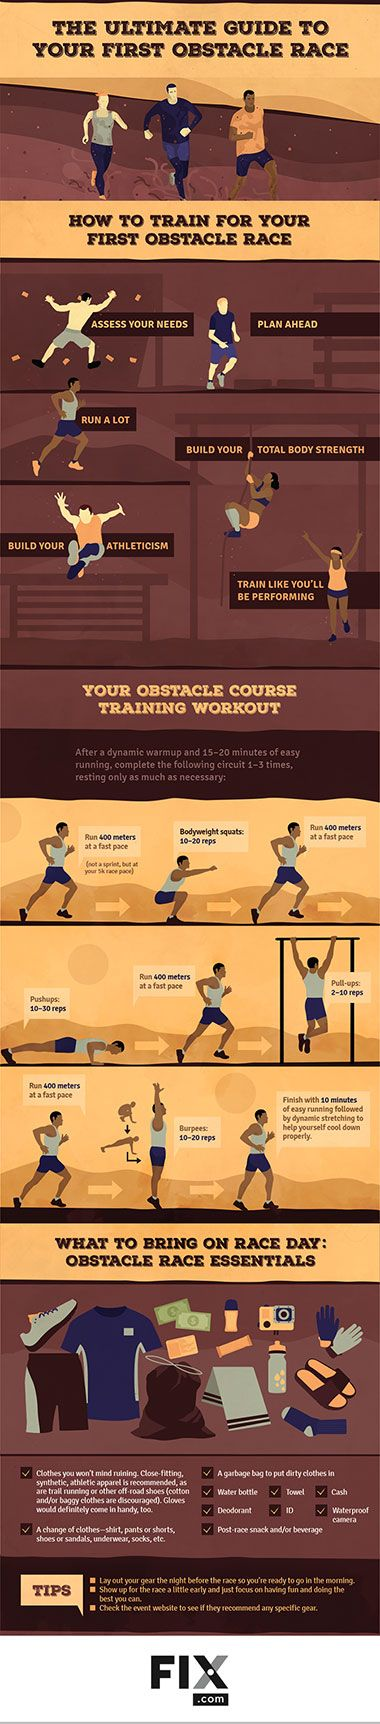 Training for your first obstacle race can seem overwhelming, but fear not! Fitness expert Jason Fitzgerald has your ultimate guide to your first obstacle race!